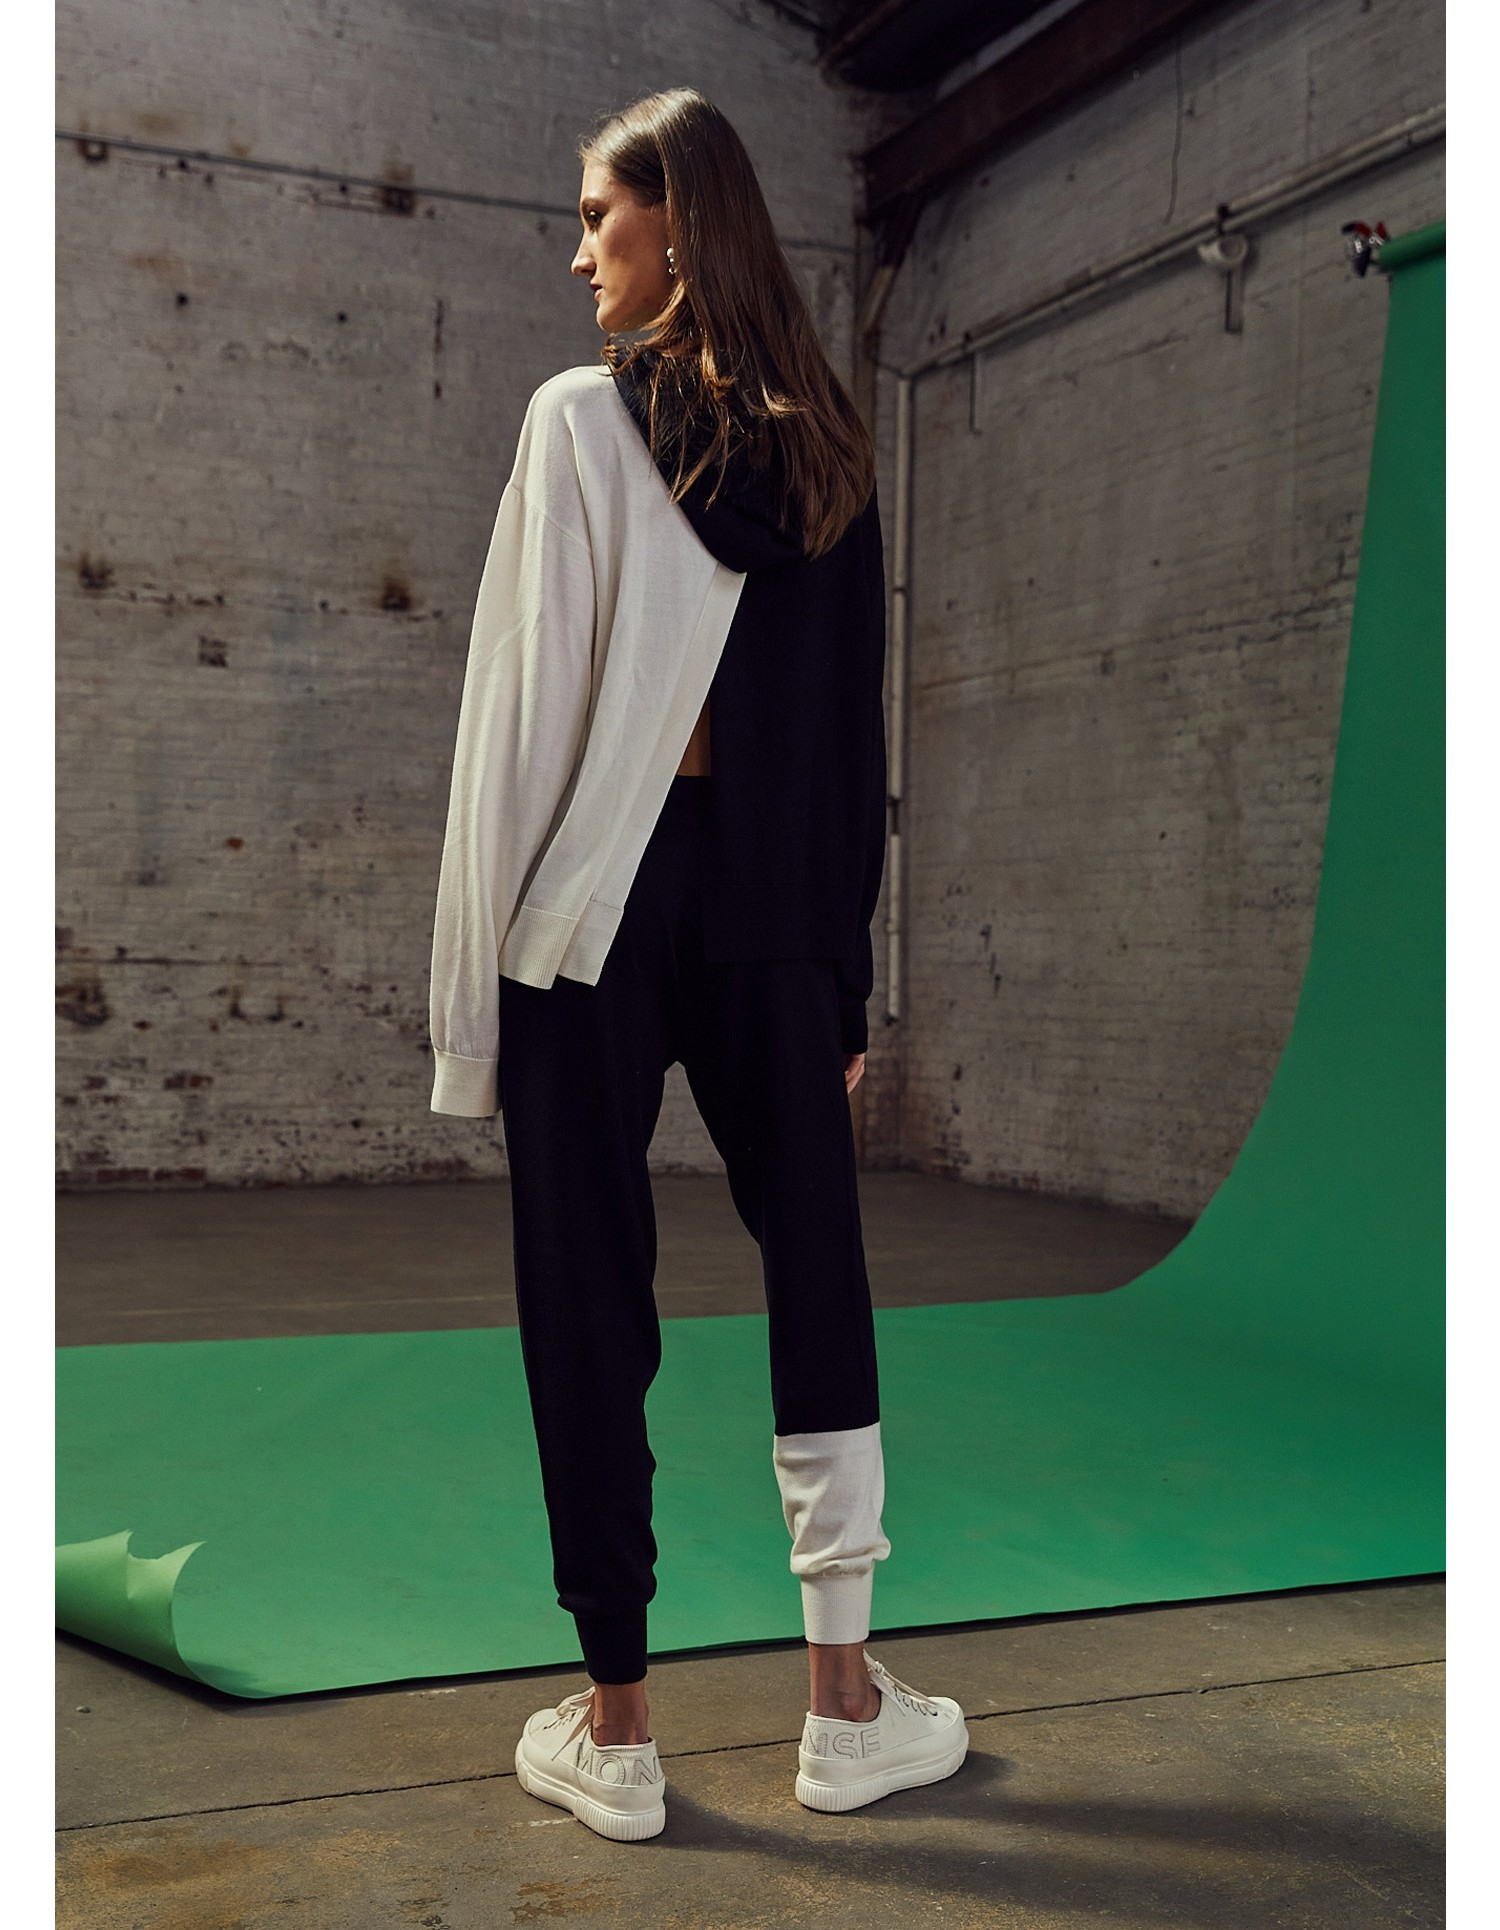 MONSE Knitted Color Block Hoodie in Midnight and Ivory on Model Front View